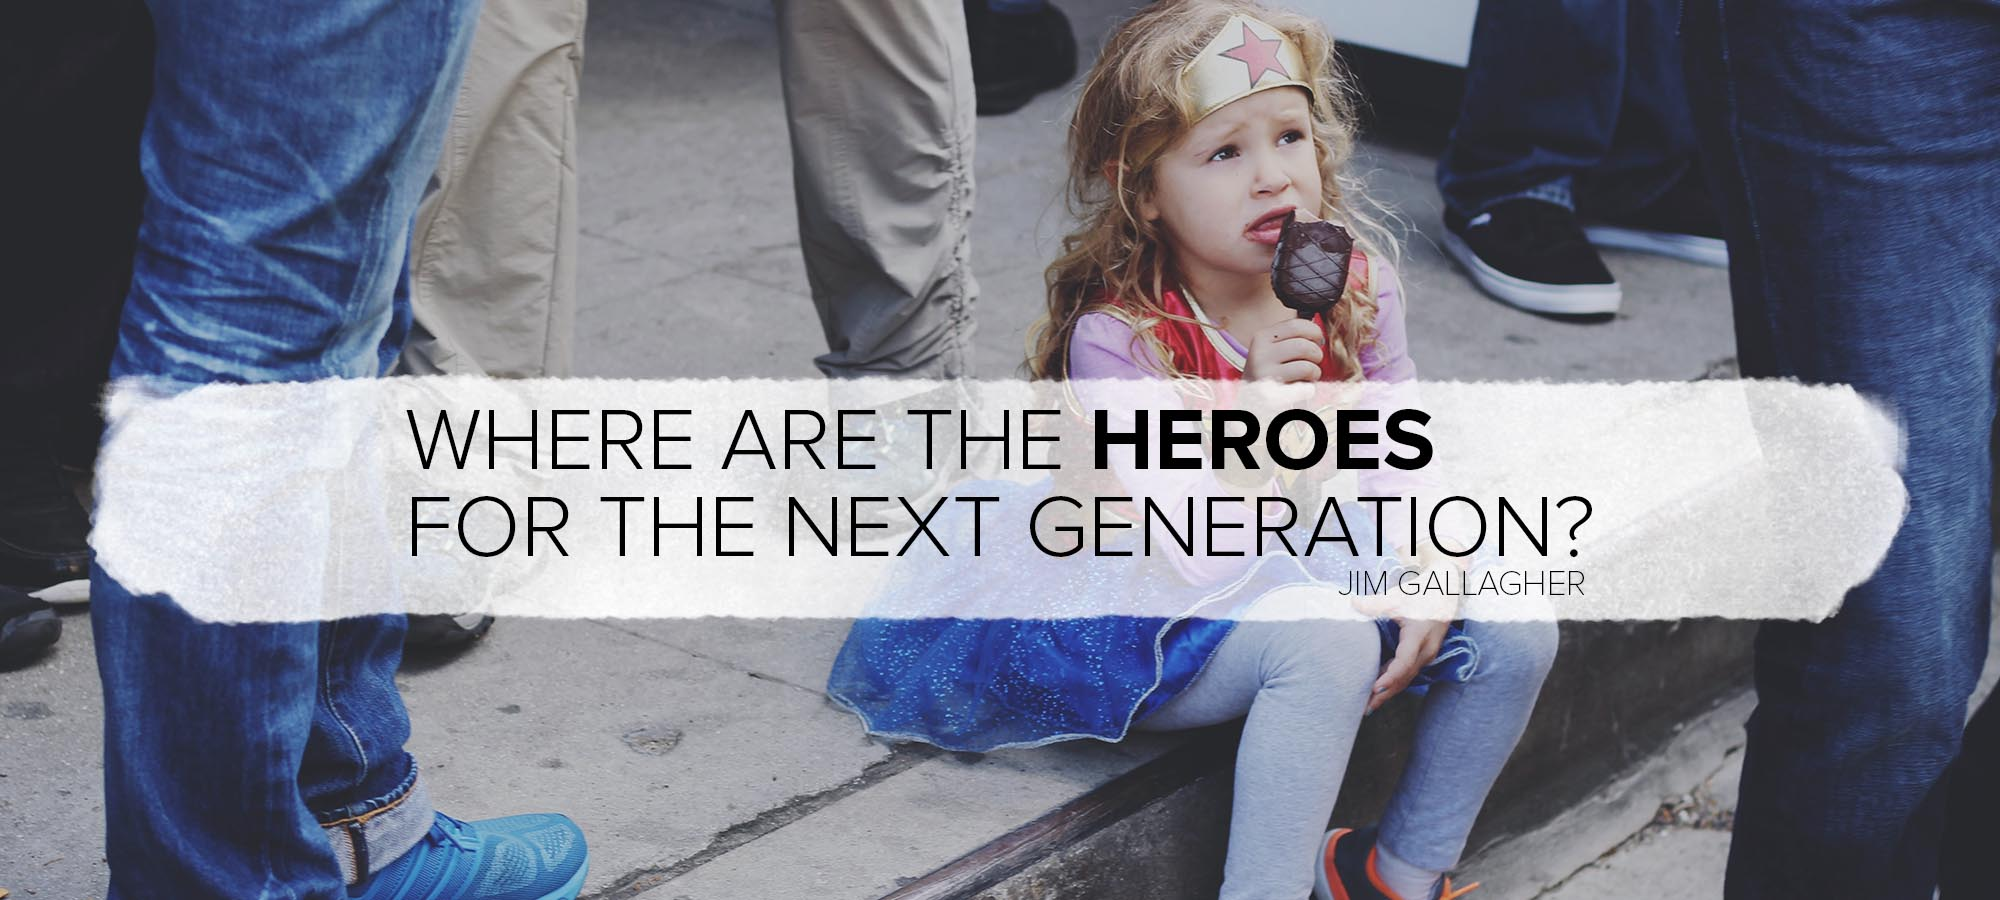 Where are the Heroes for the Next Generation?